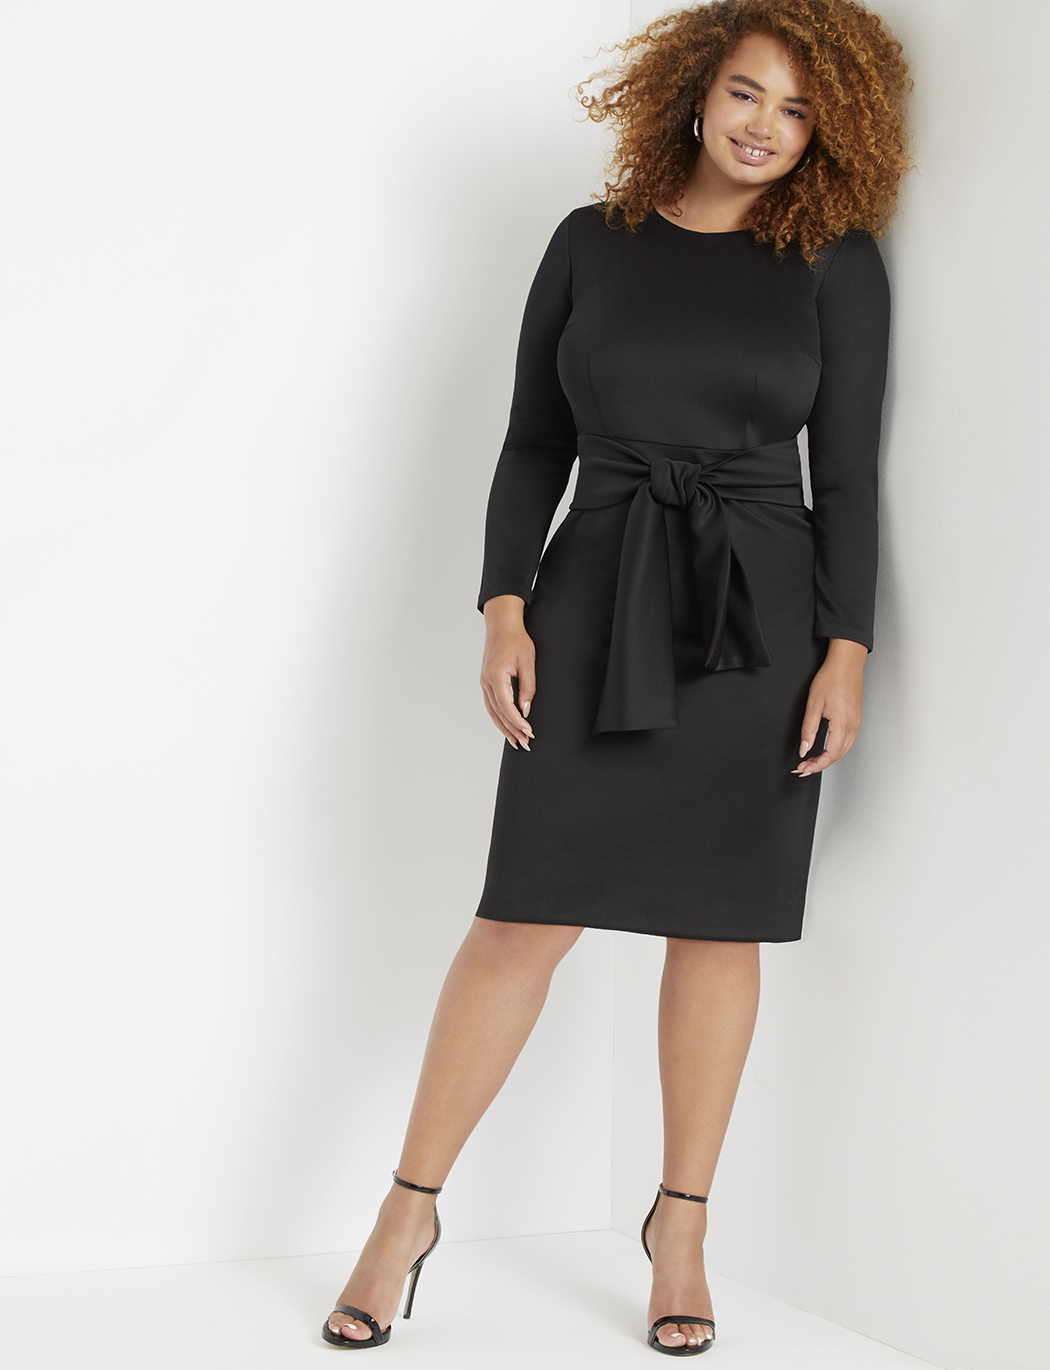 2a4da4467 Long Sleeve Scuba Dress with Tie | Women's Plus Size Dresses ...